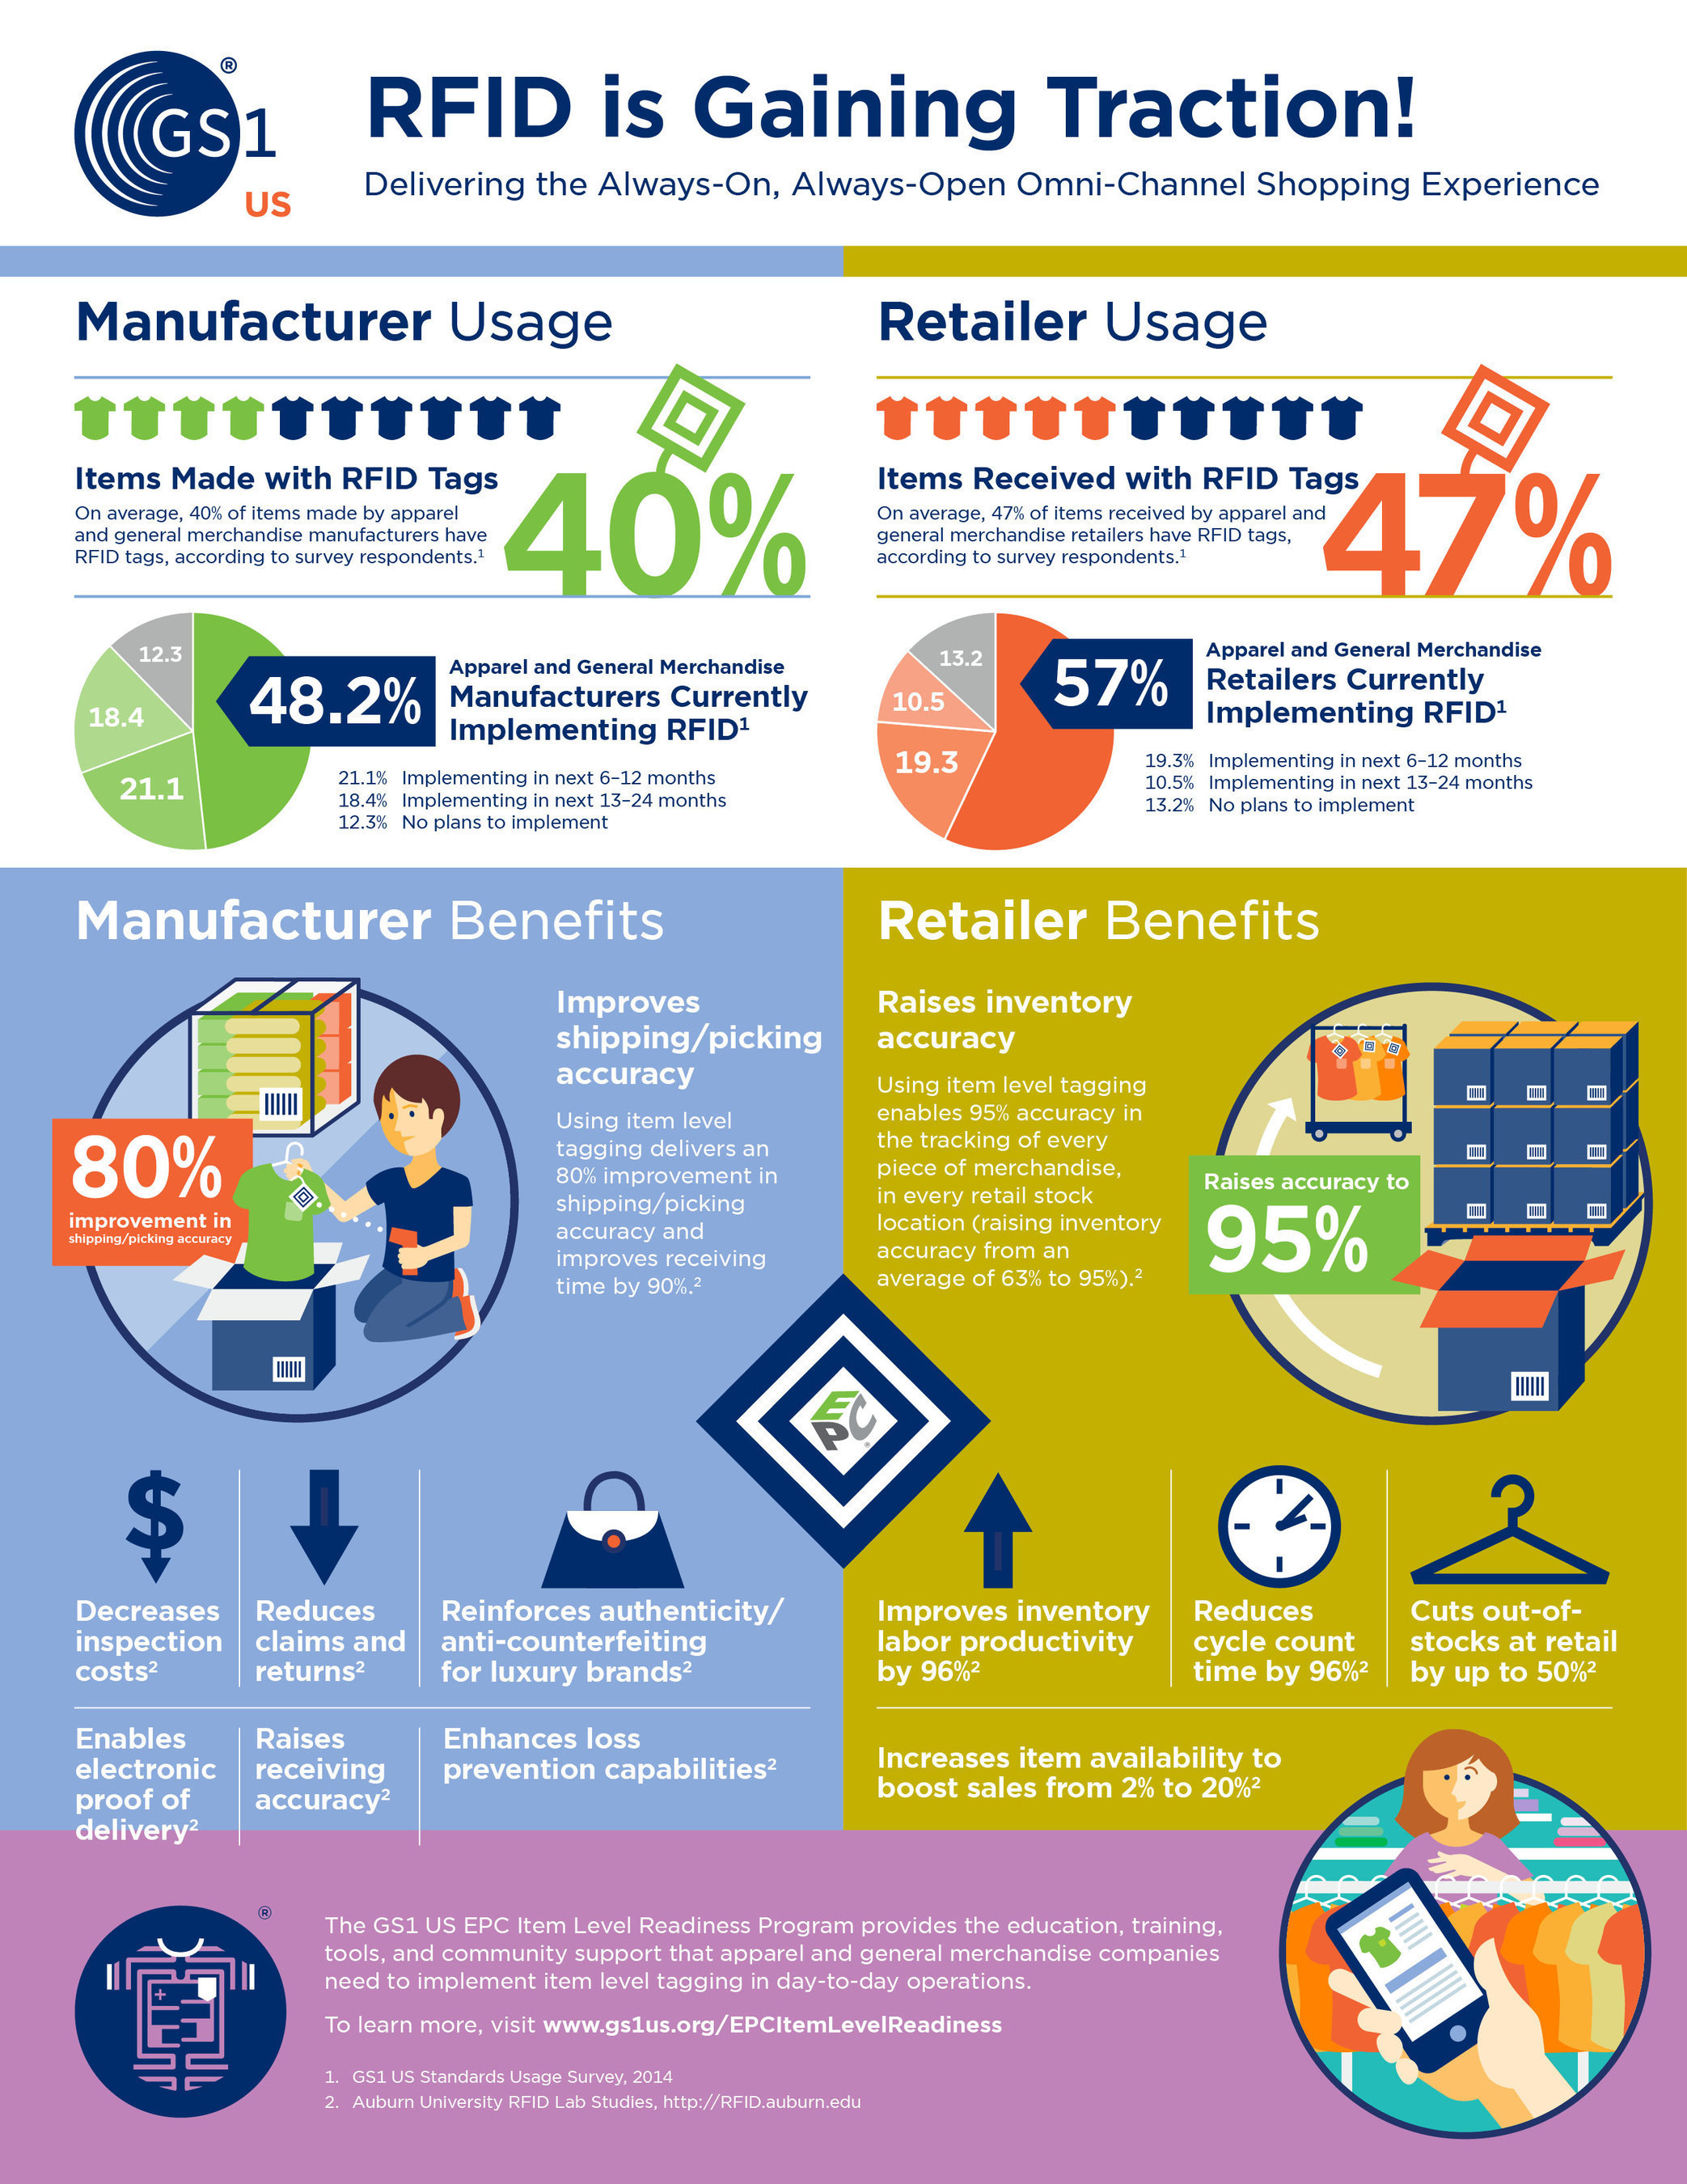 Data from the GS1 US Standards Usage Survey and Auburn University's RFID Lab.